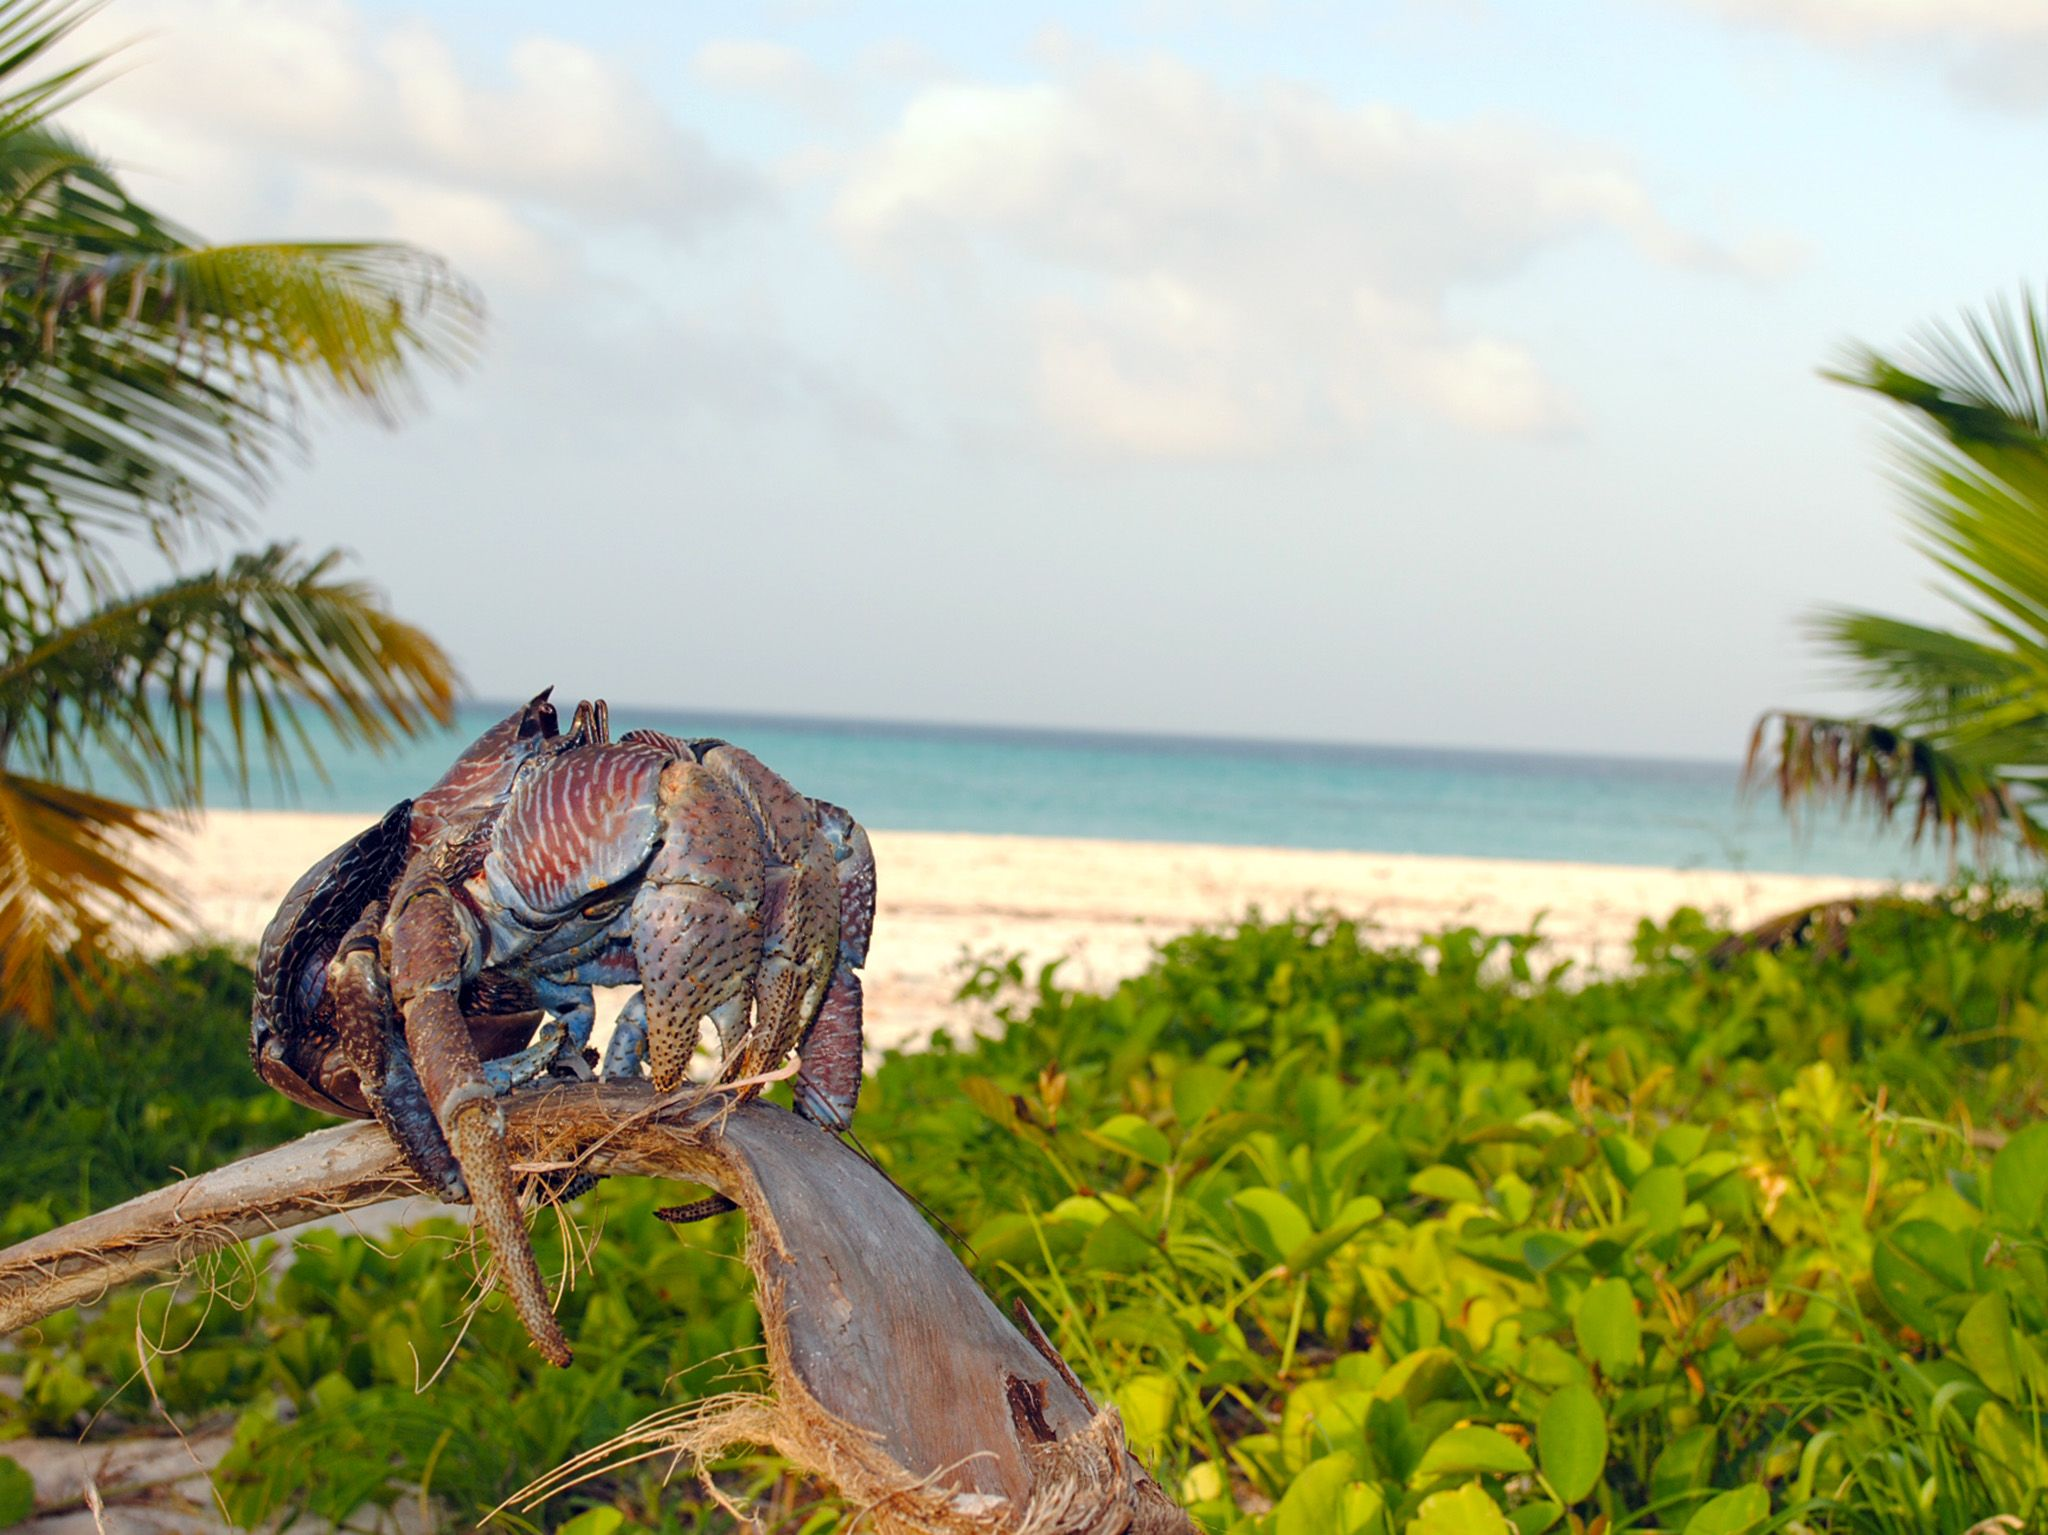 Fanjove Island, Tanzania:  A coconut crab on a palm branch.  This image is from Jane Goodall:... [Photo of the day - April 2018]